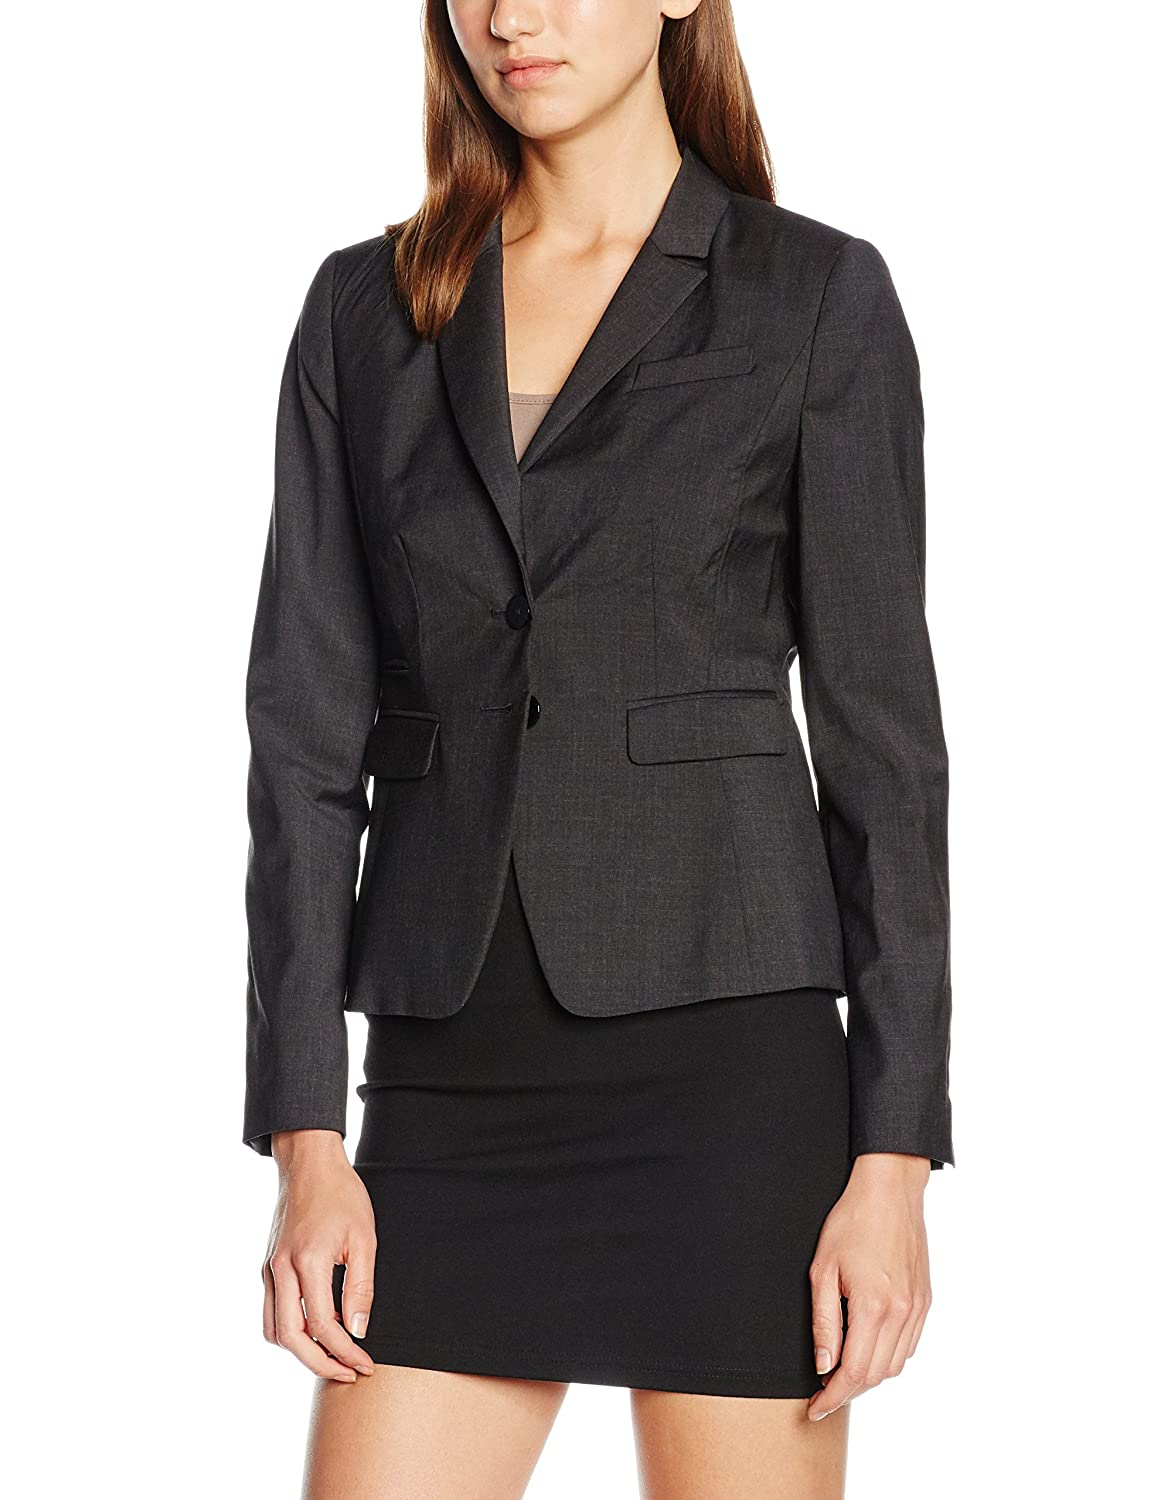 TAIFUN by Gerry Weber Damen Blazer Casino 4